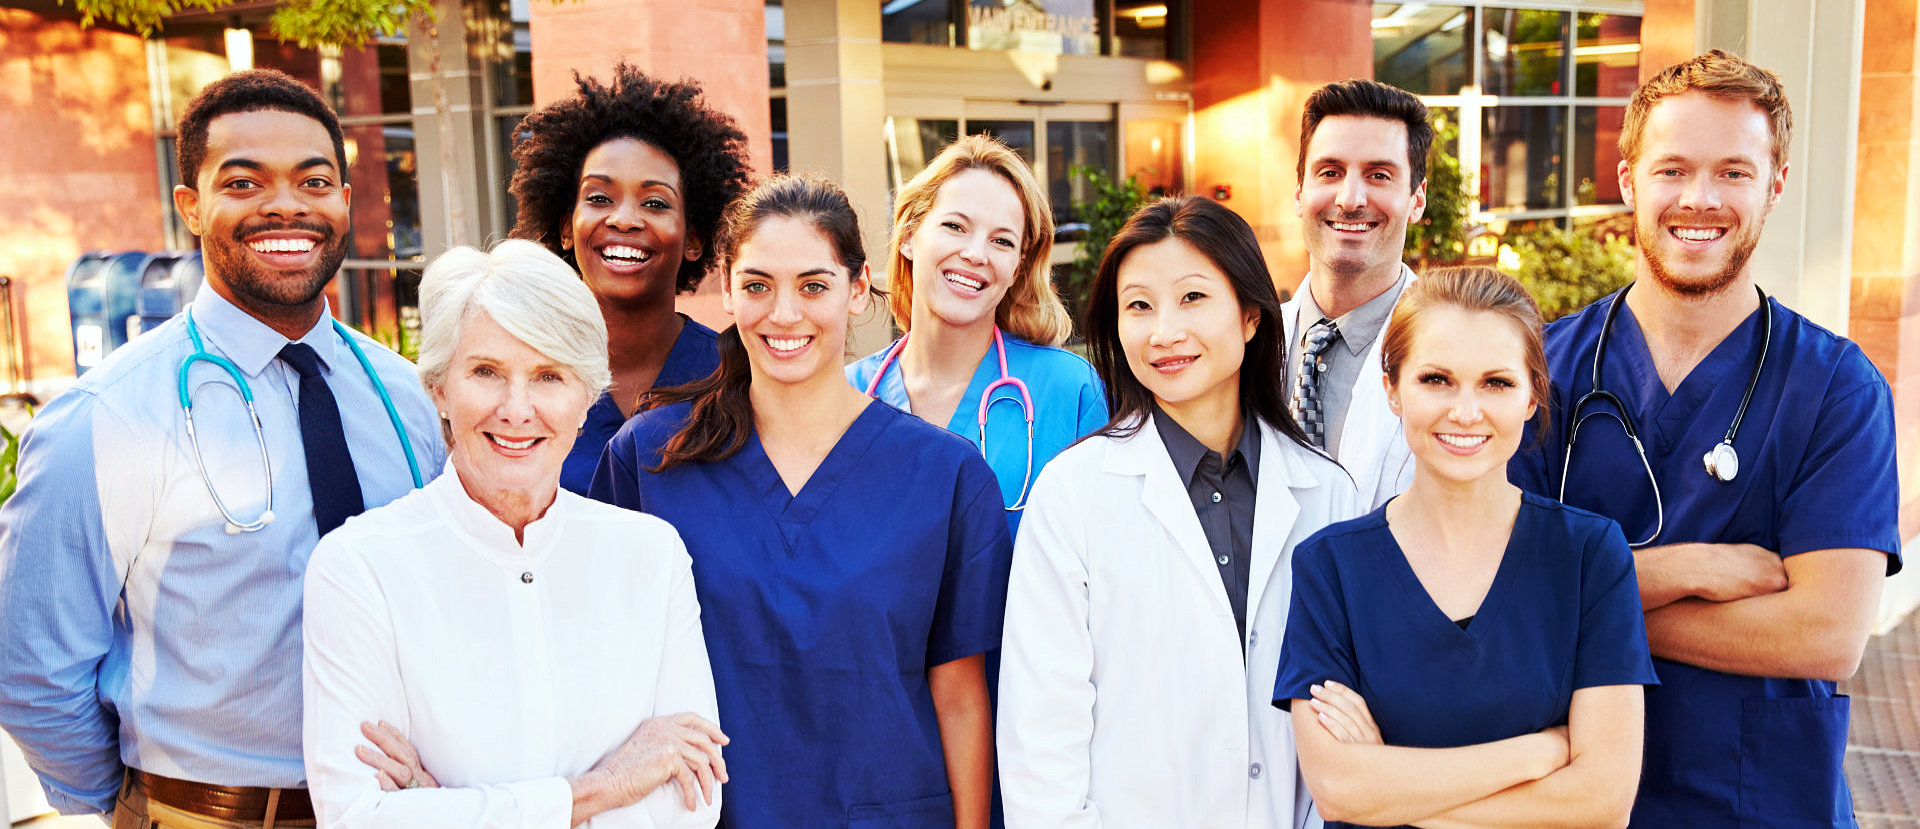 group of doctors and nurses smiling